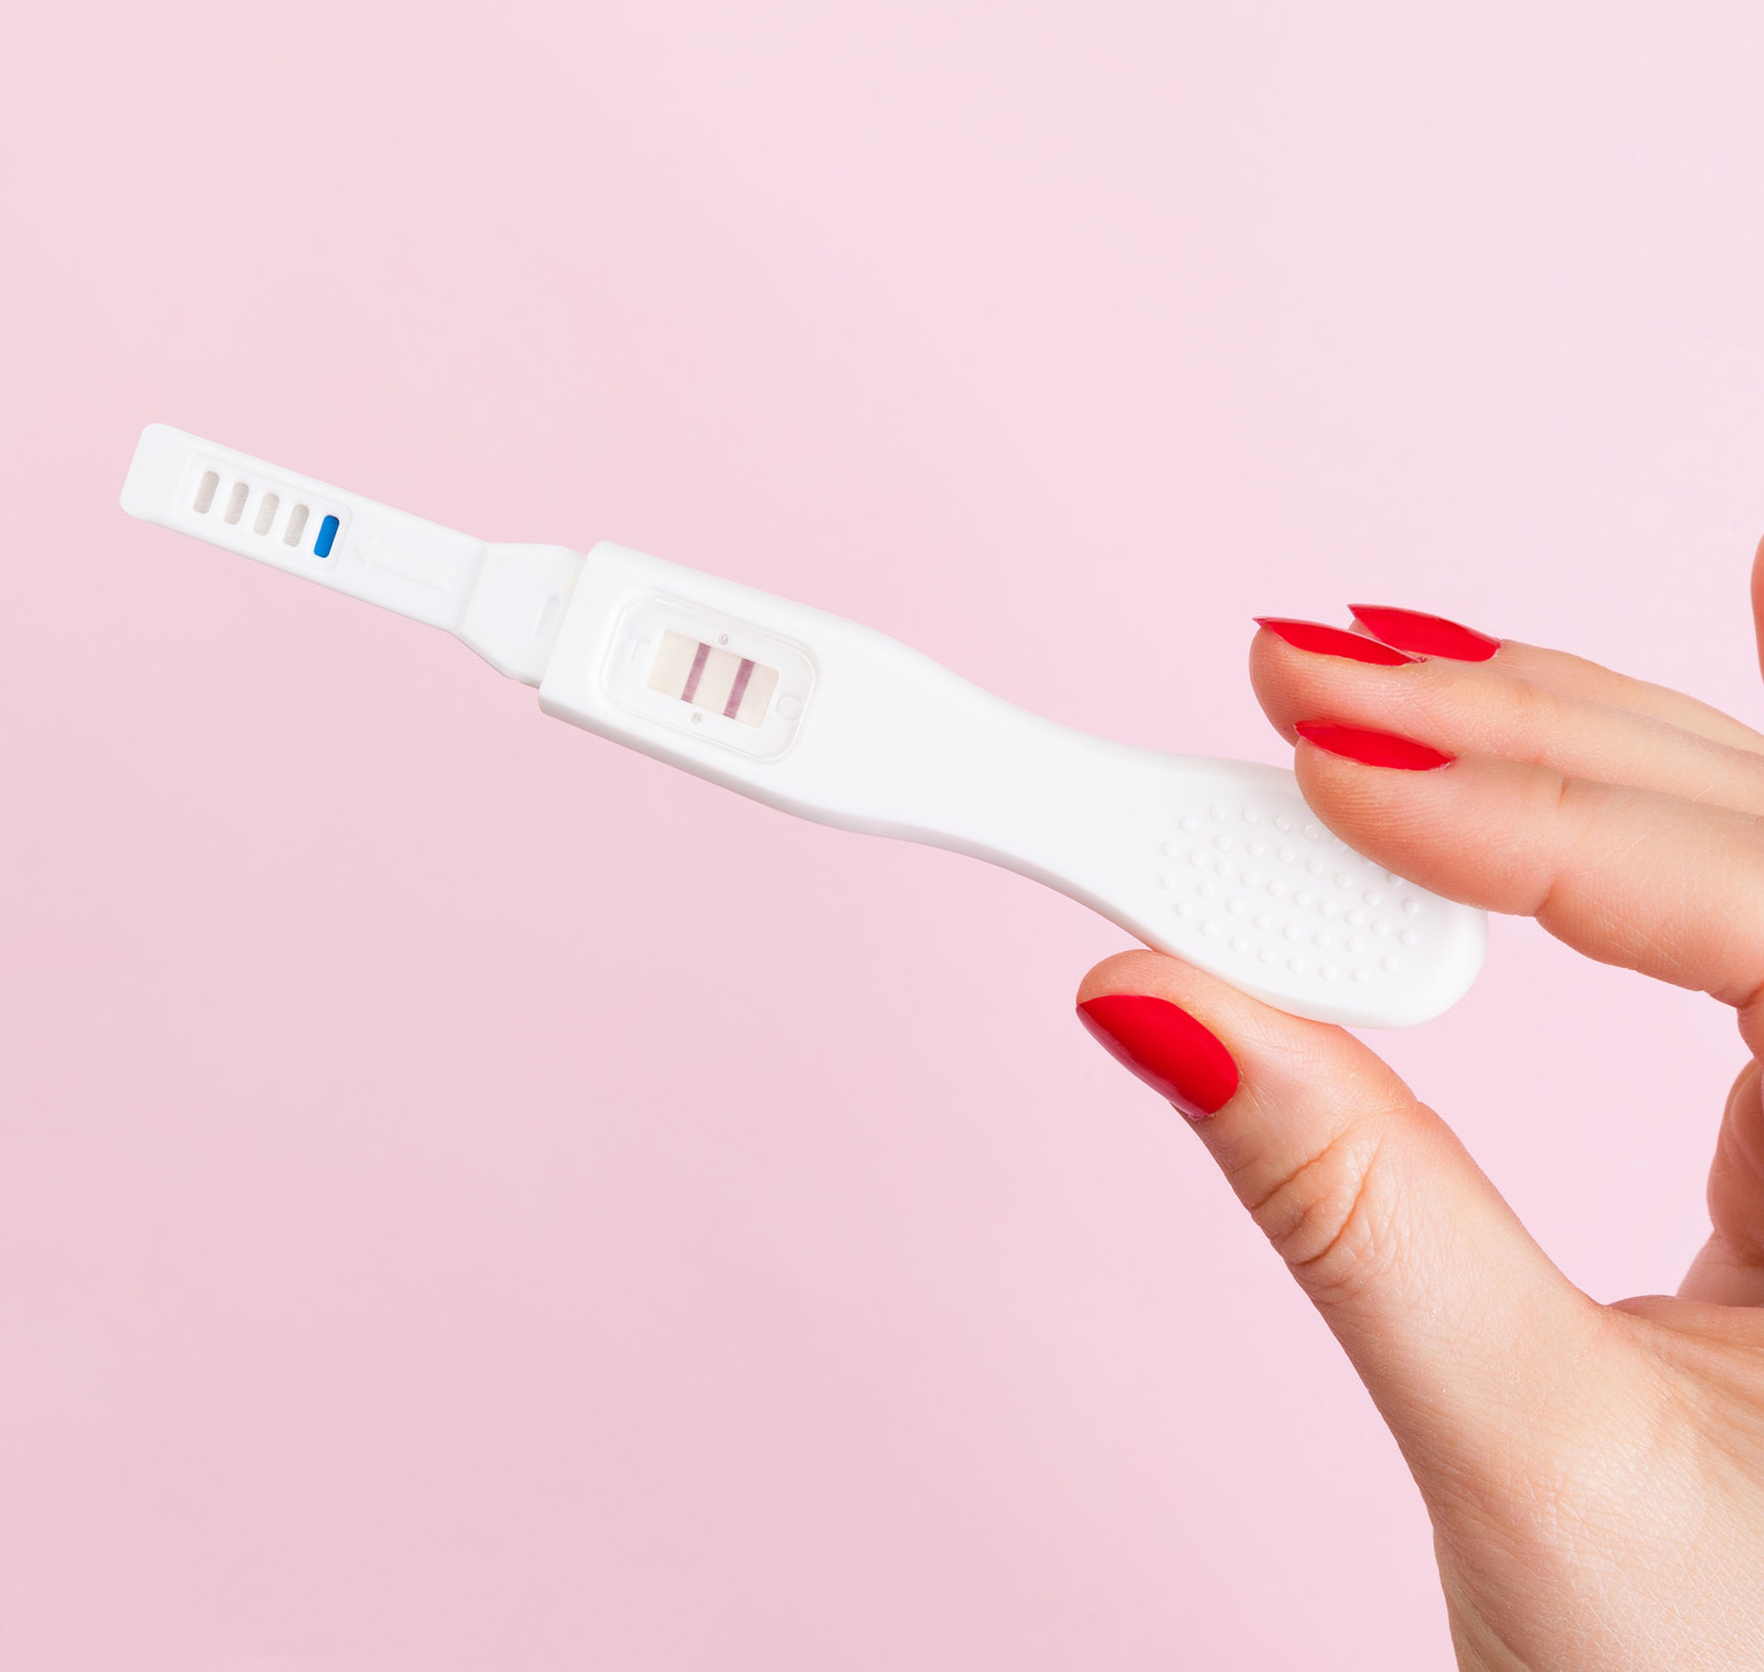 A Woman's Concern provides FREE and confidential pregnancy test services. - If you are sexually active, it is possible to become pregnant even if you are using contraception. Below is a list of some common pregnancy symptoms, but keep in mind that there are other medical conditions that can cause these symptoms.If you have been sexually active and experiencing any of the following symptoms, it's important to get an accurate pregnancy test and talk to someone about your situation.We're here for you.